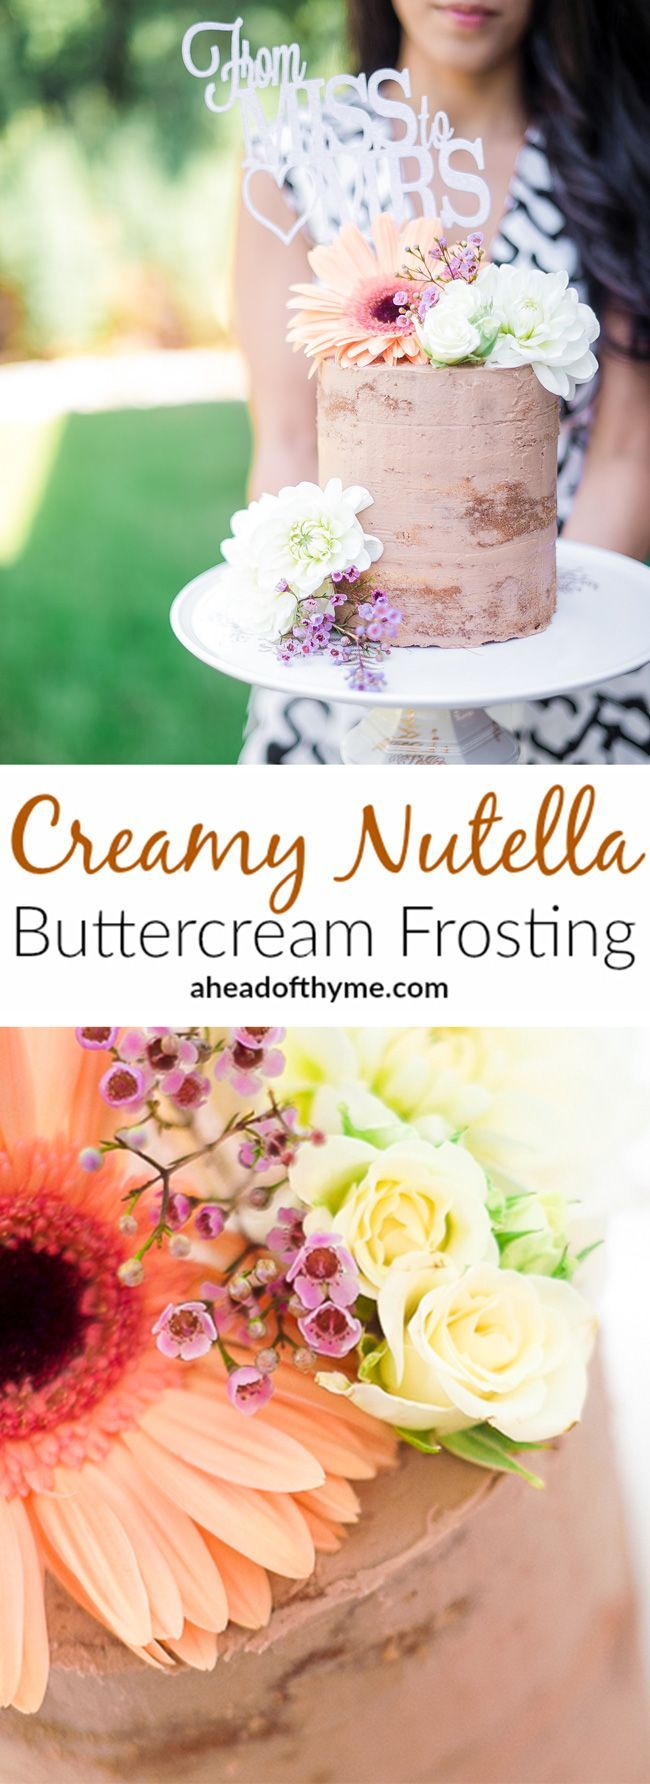 Creamy Nutella Buttercream Frosting: Decorate any cake or cupcake with this…